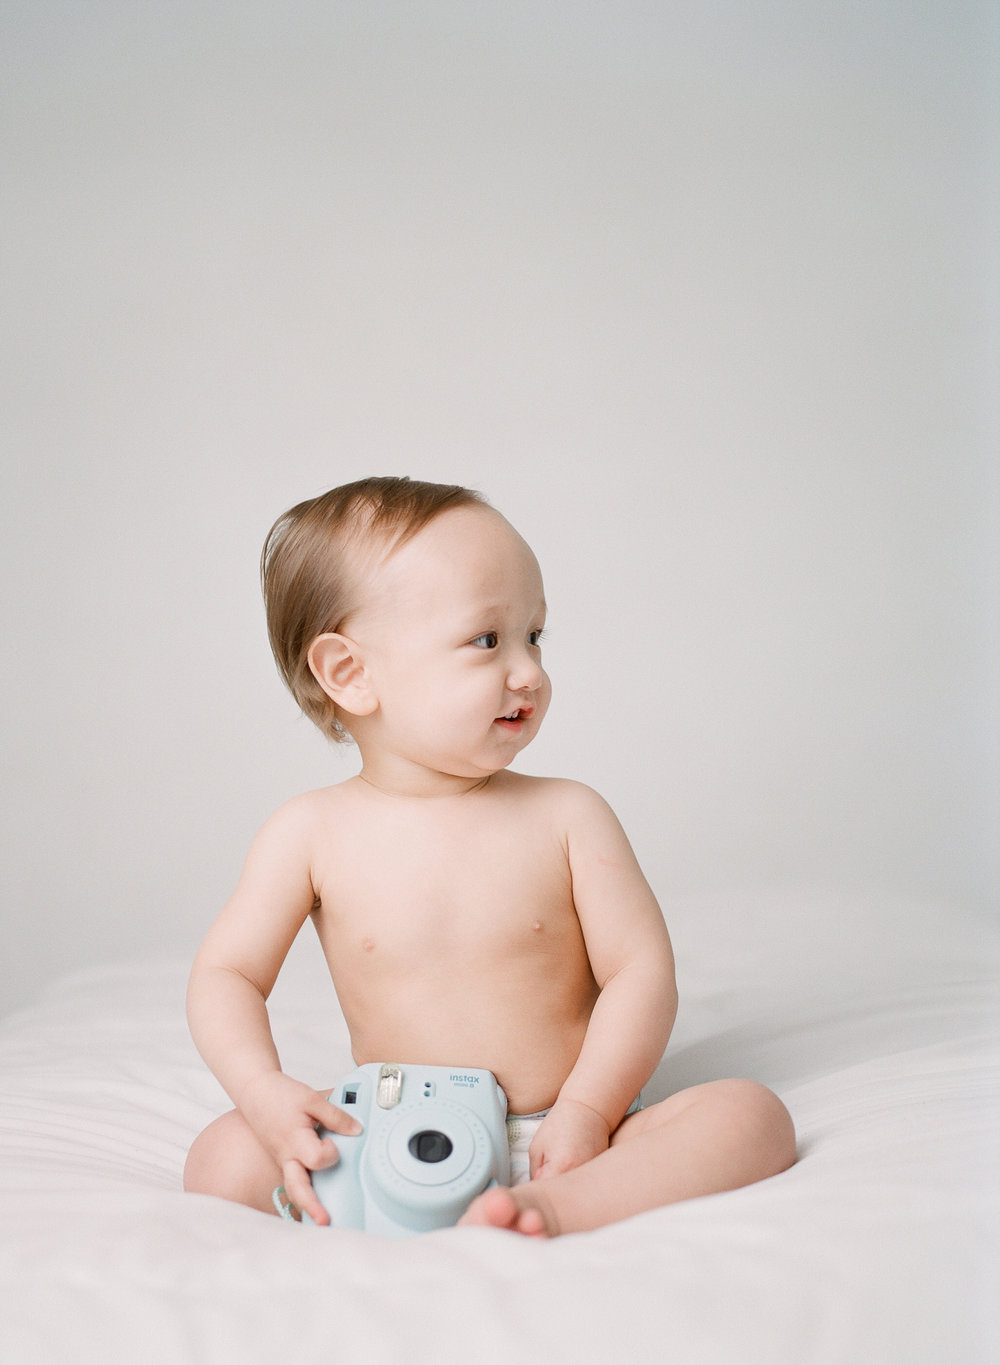 what to bring to a photography studio | bringing props and toys to your studio session | baby's first birthday with toy blue polaroid camera | film photographer sandra coan